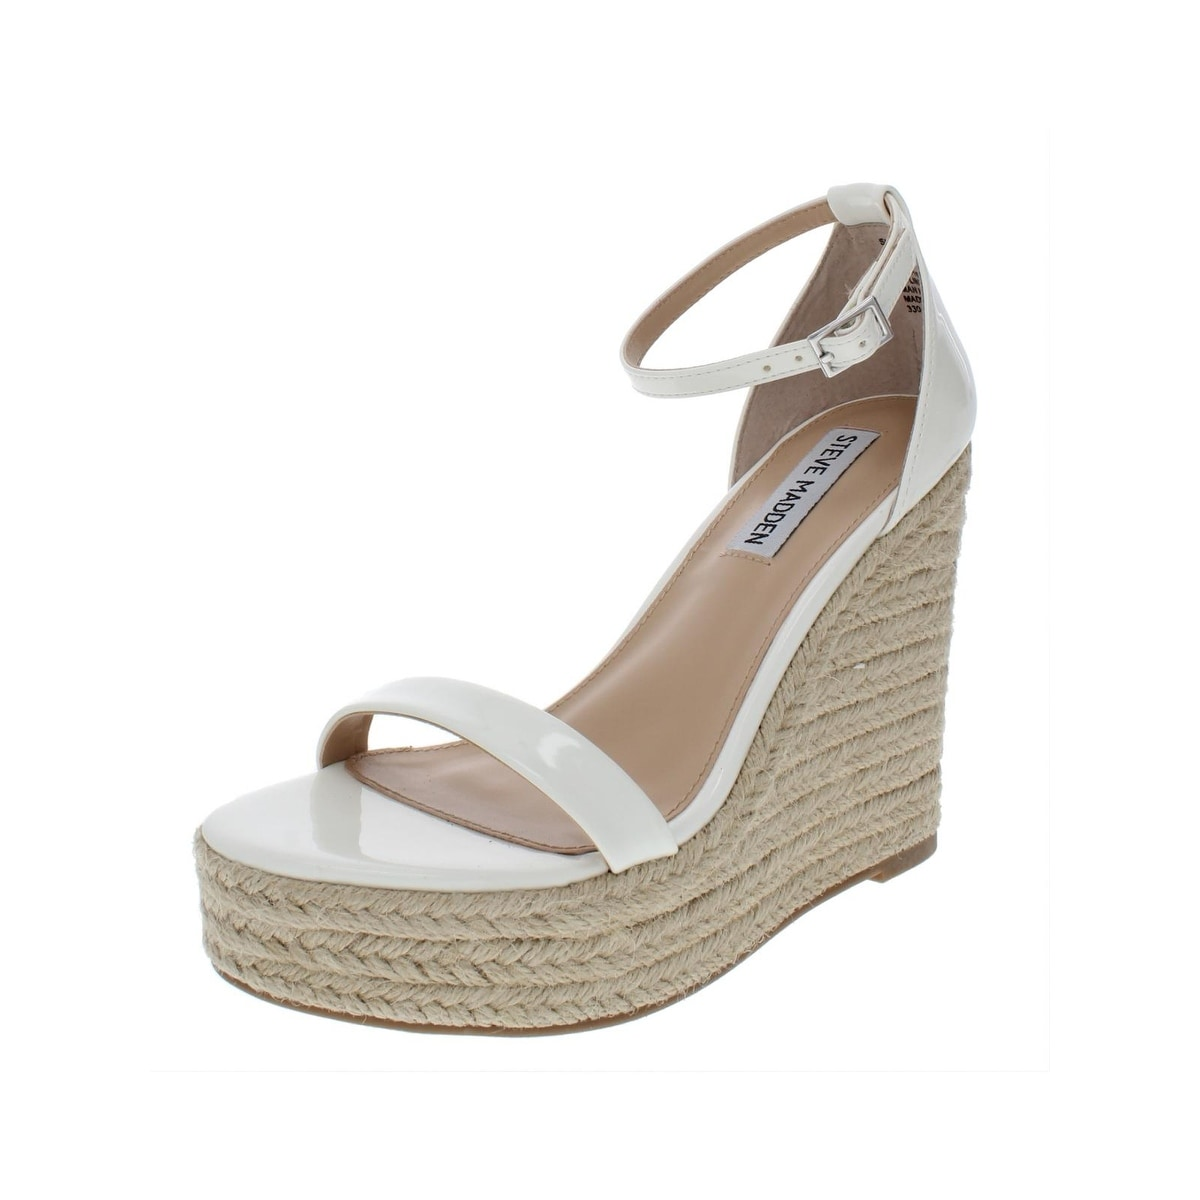 8d5cc139cdd Steve Madden Shoes